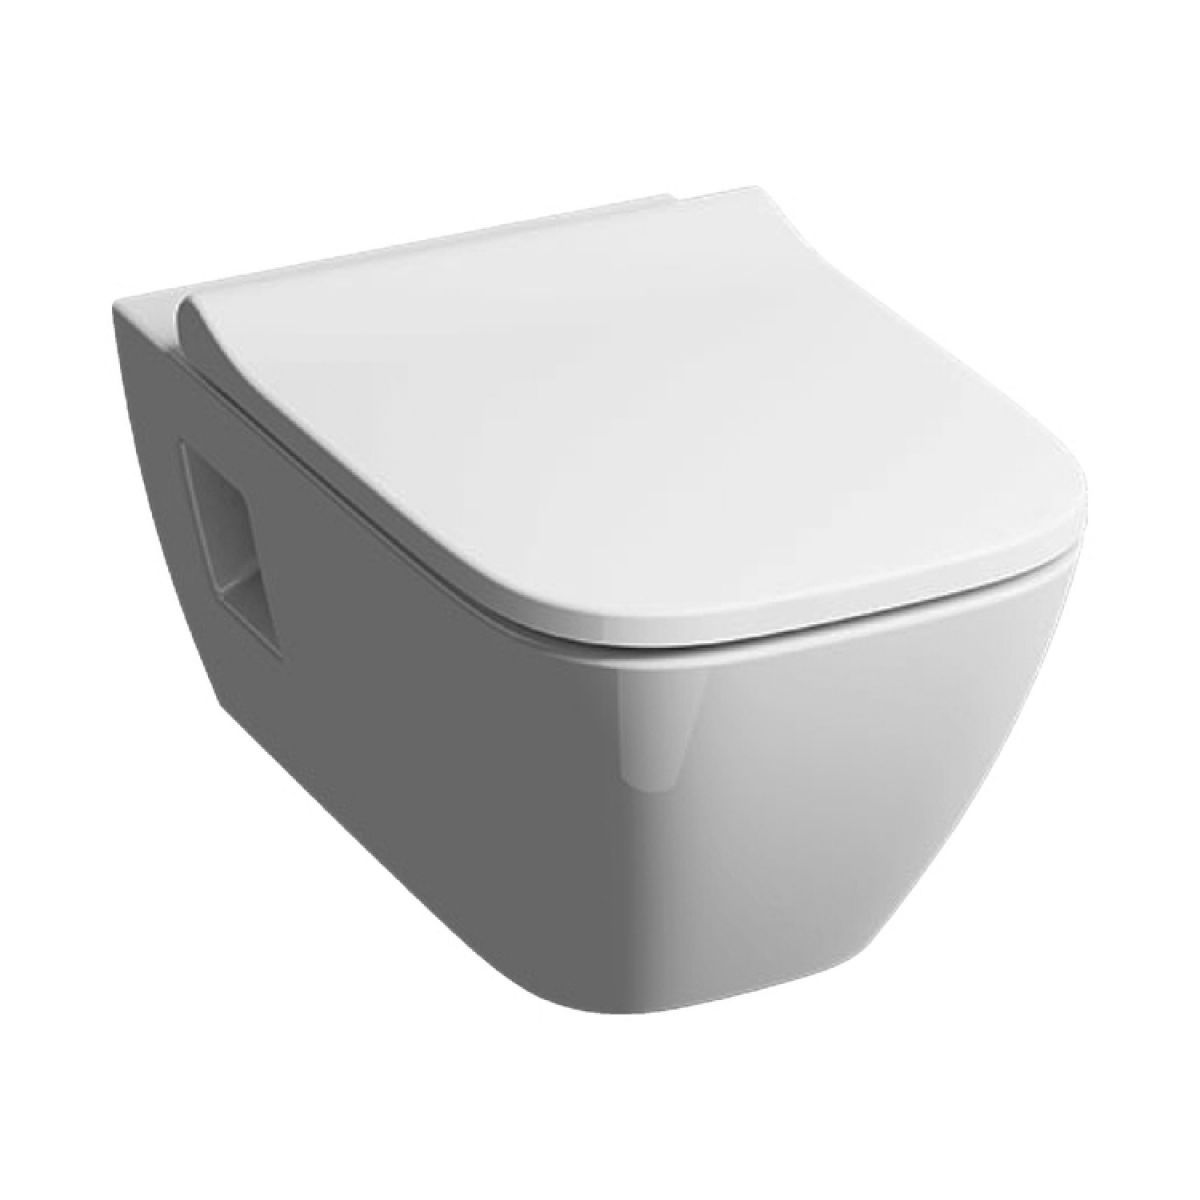 Geberit Smyle Square Wall Hung Toilet Rimfree Bathrooms